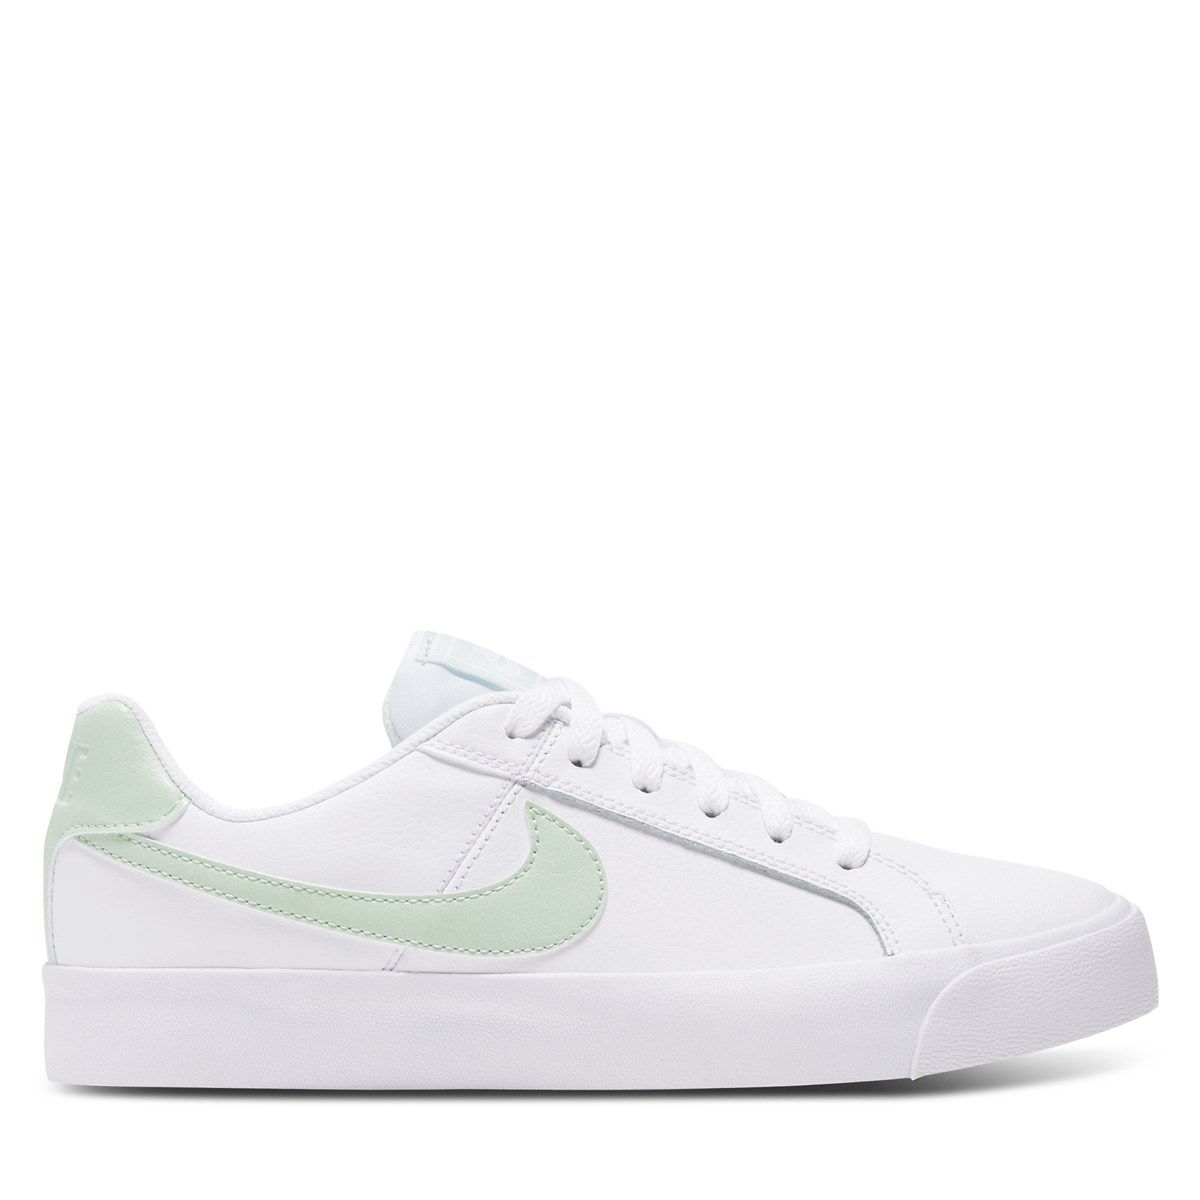 Women's Court Royale AC Sneakers in White